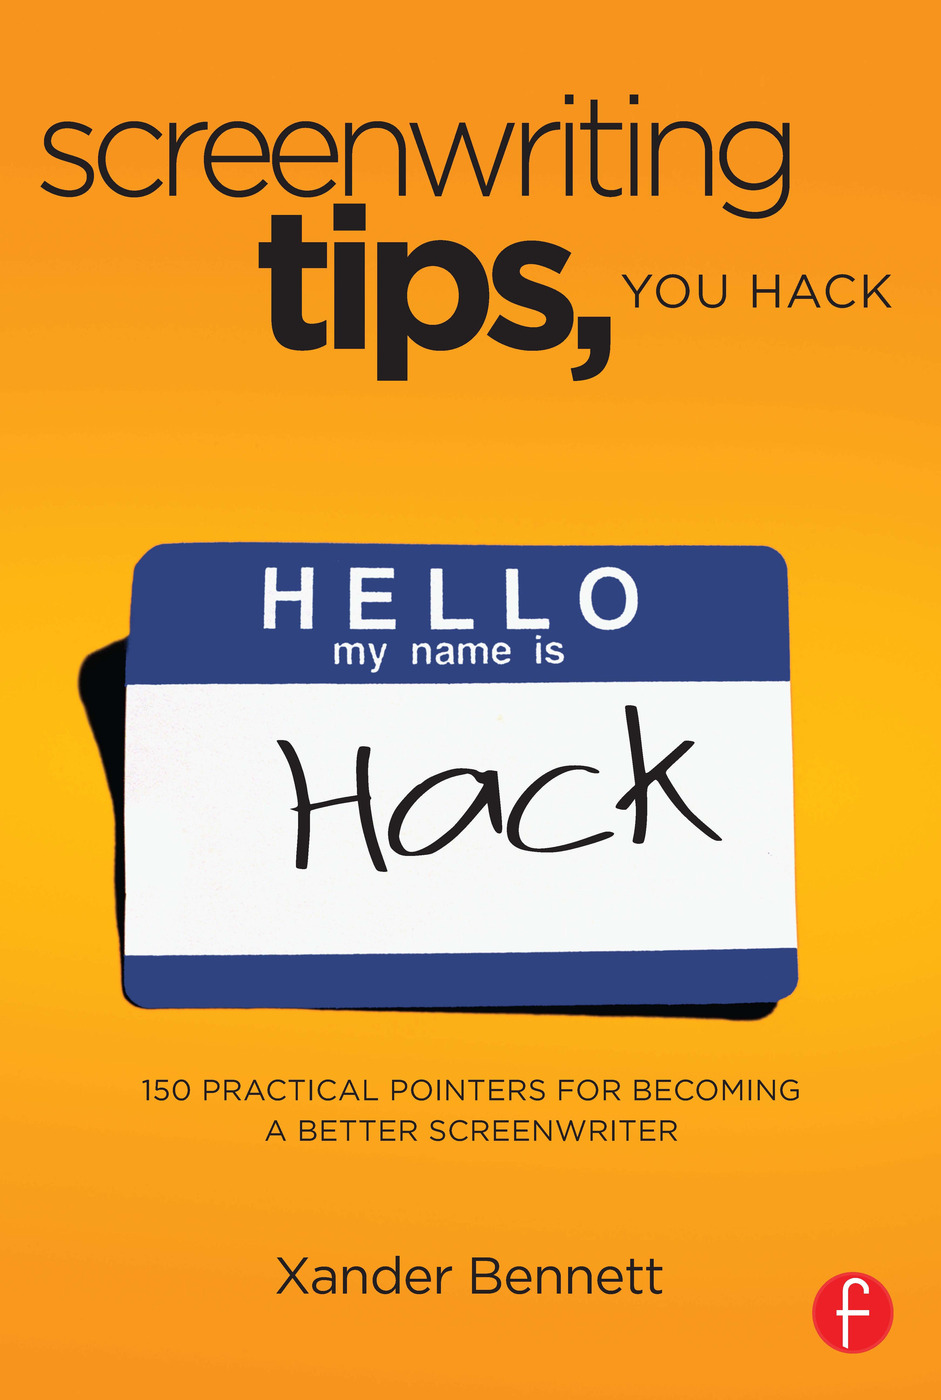 Screenwriting Tips, You Hack: 150 Practical Pointers for Becoming a Better Screenwriter book cover